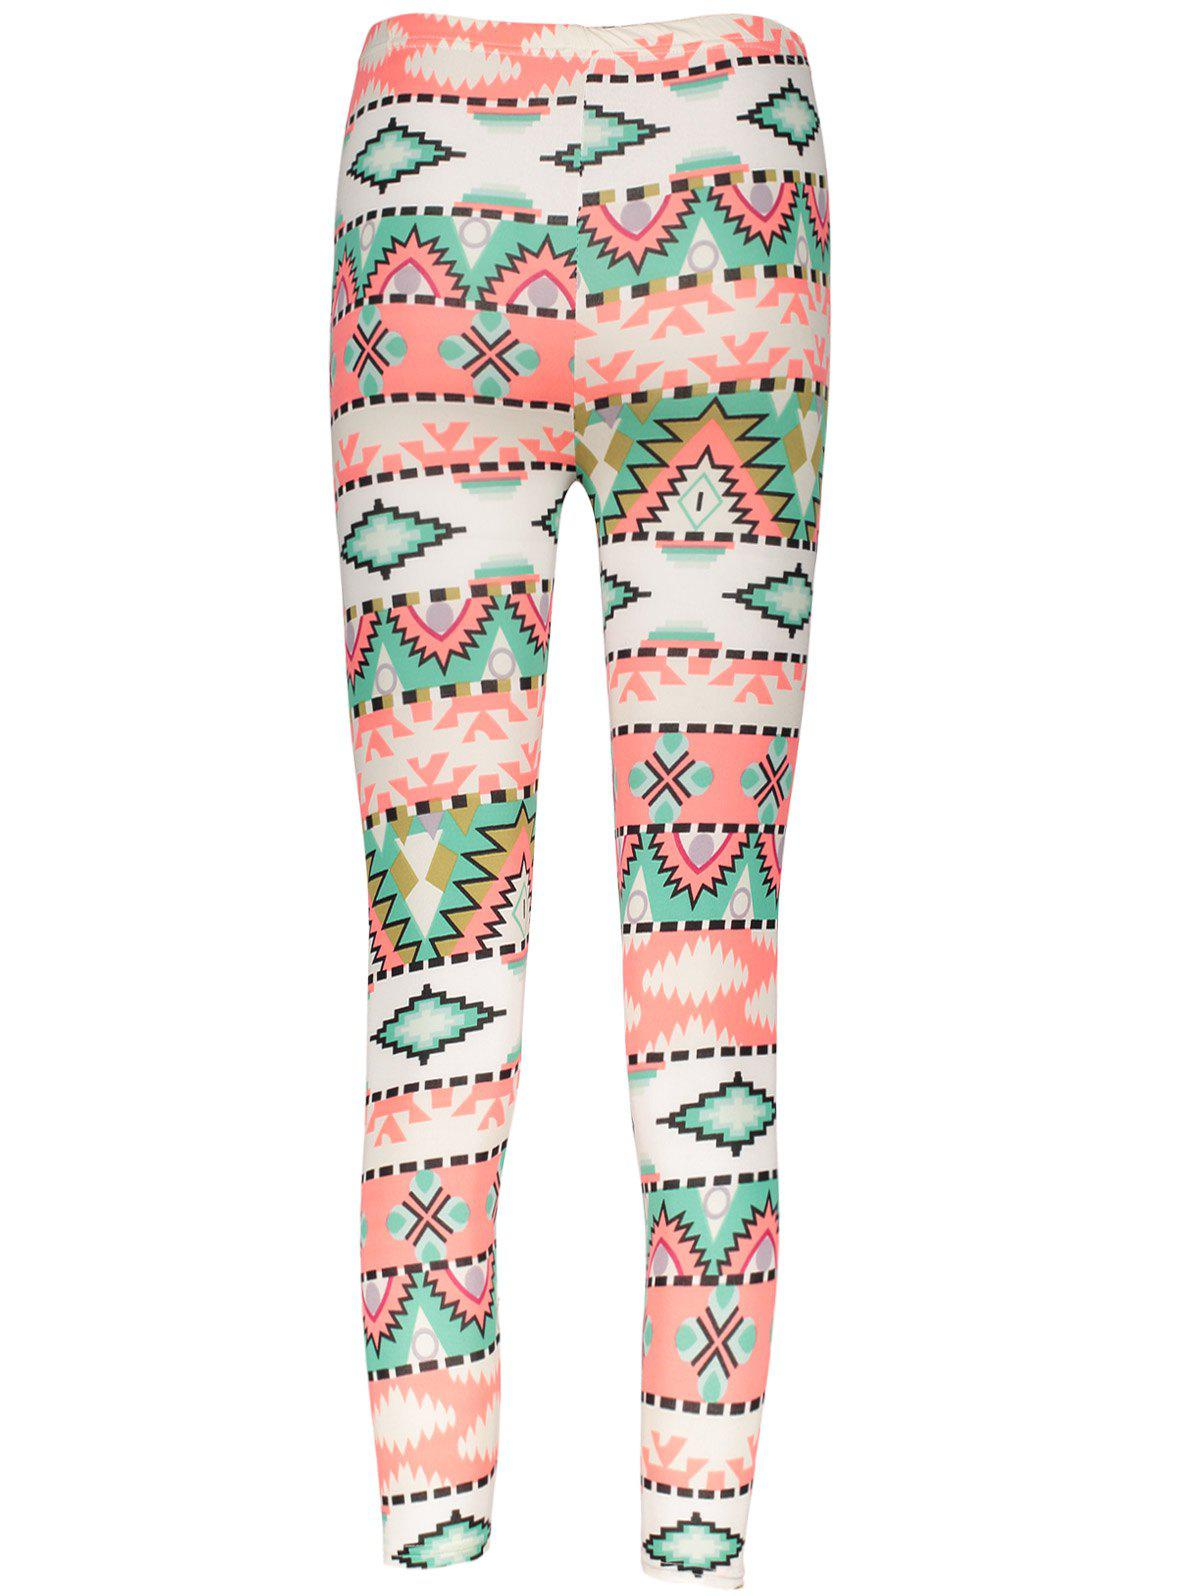 Geometrical Christmas Pattern Leggings For Women